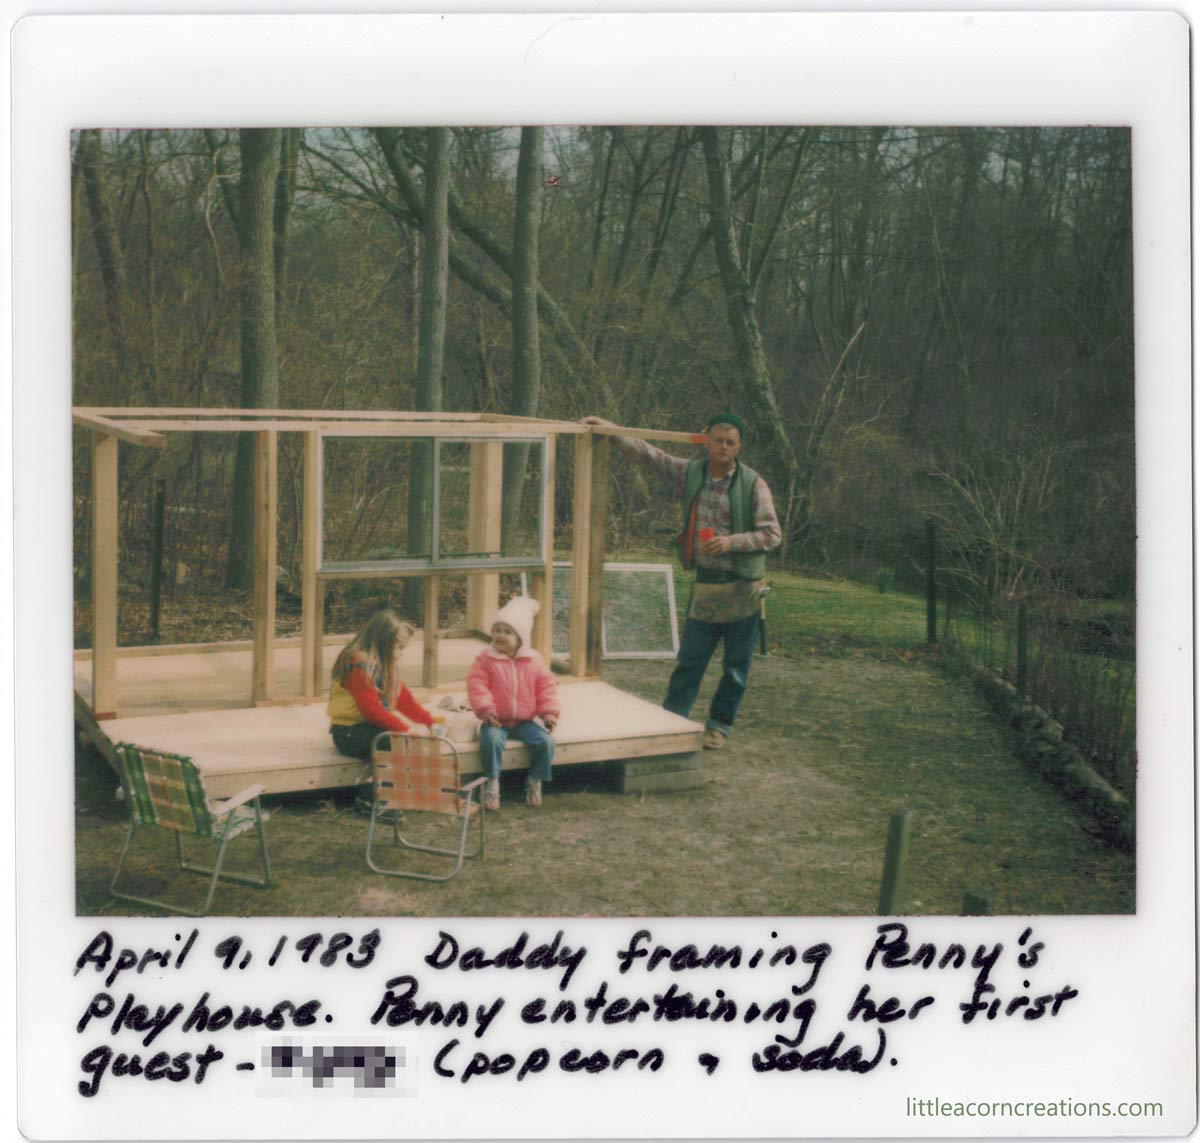 "A man in his mid 40s stands with his hands on the frame of a small wooden structure. There is a window leaning against a tree in the background. Two young children sit on the completed plywood decking sharing a snack. The polaroid image is captioned ""April 9, 1983 Daddy framing Penny's Playhouse. Penny entertaining her first guest - [name blurred] (popcorn & soda)."